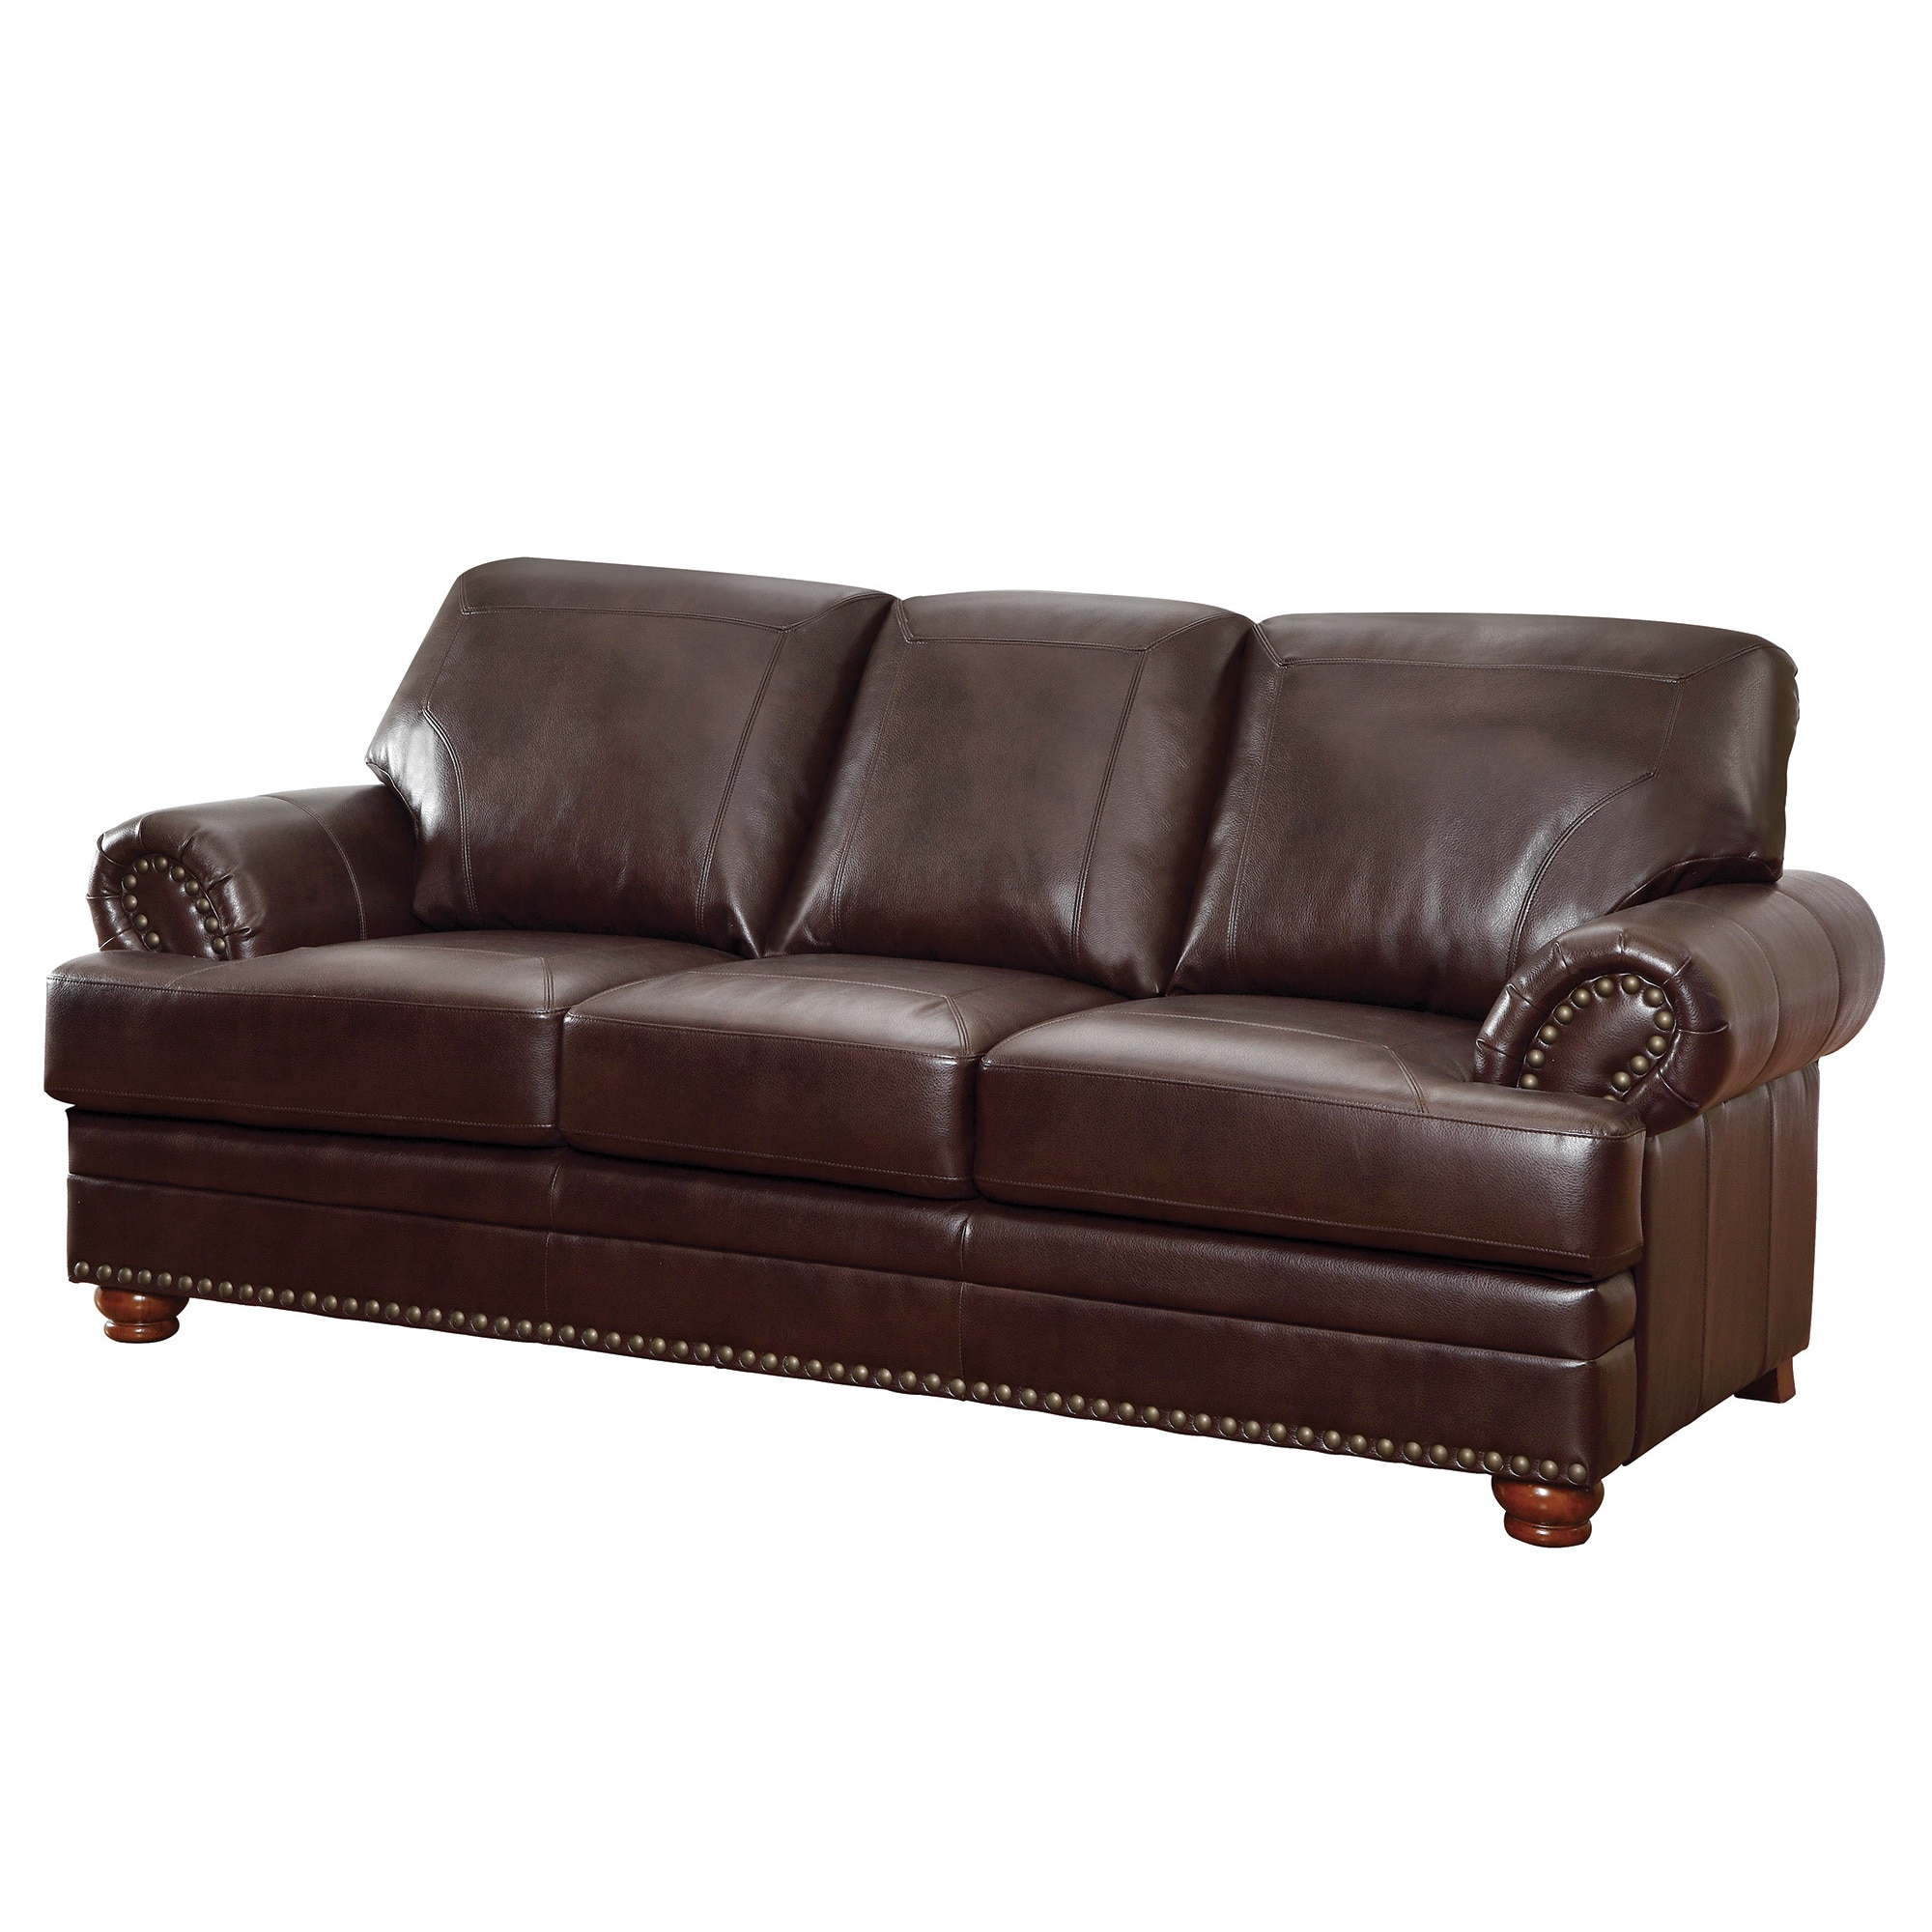 Details about Coaster Company Brown Bonded Leather Sofa/ Loveseat